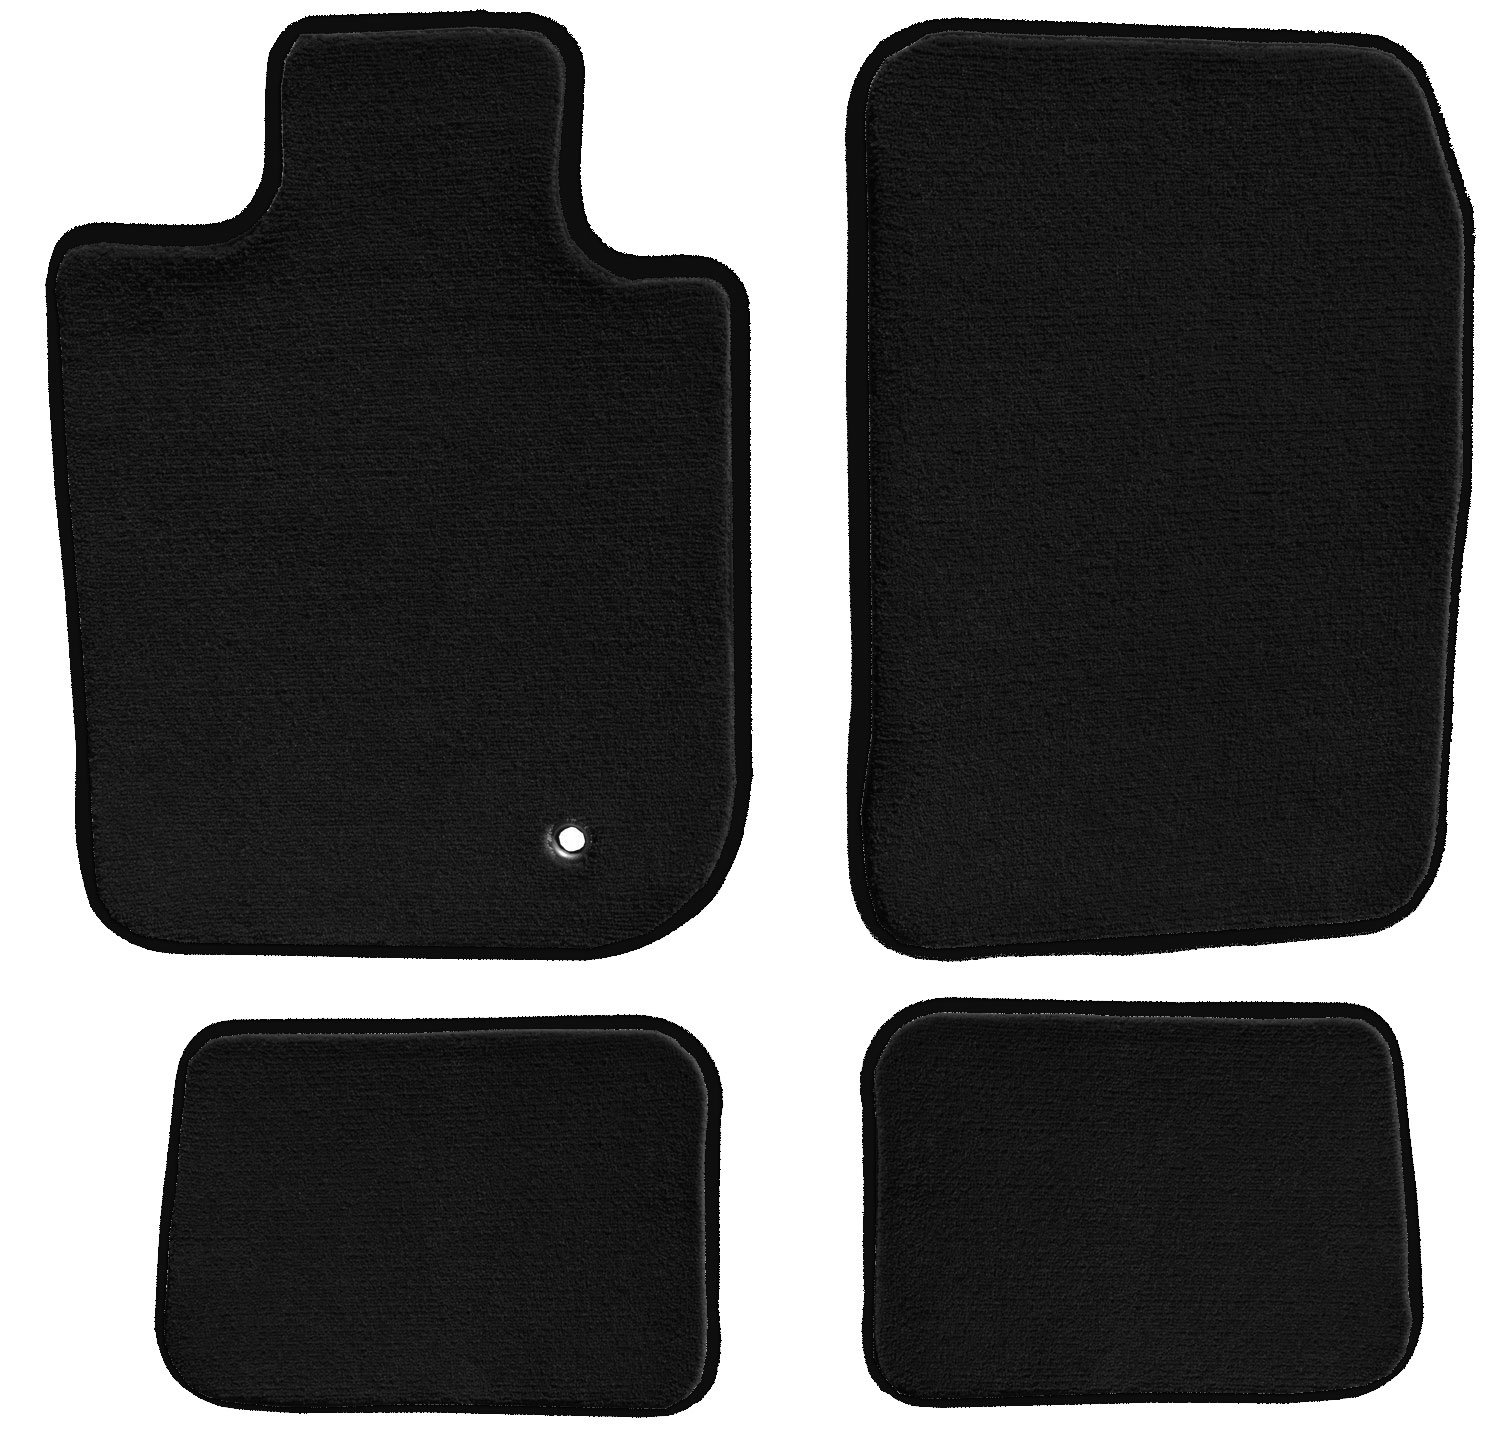 Passenger /& Rear Floor 2004 2005 2006 GGBAILEY D4234A-S1A-BK-LP Custom Fit Car Mats for 2001 2008 2002 2007 2003 2009 GMC Envoy Black Loop Driver